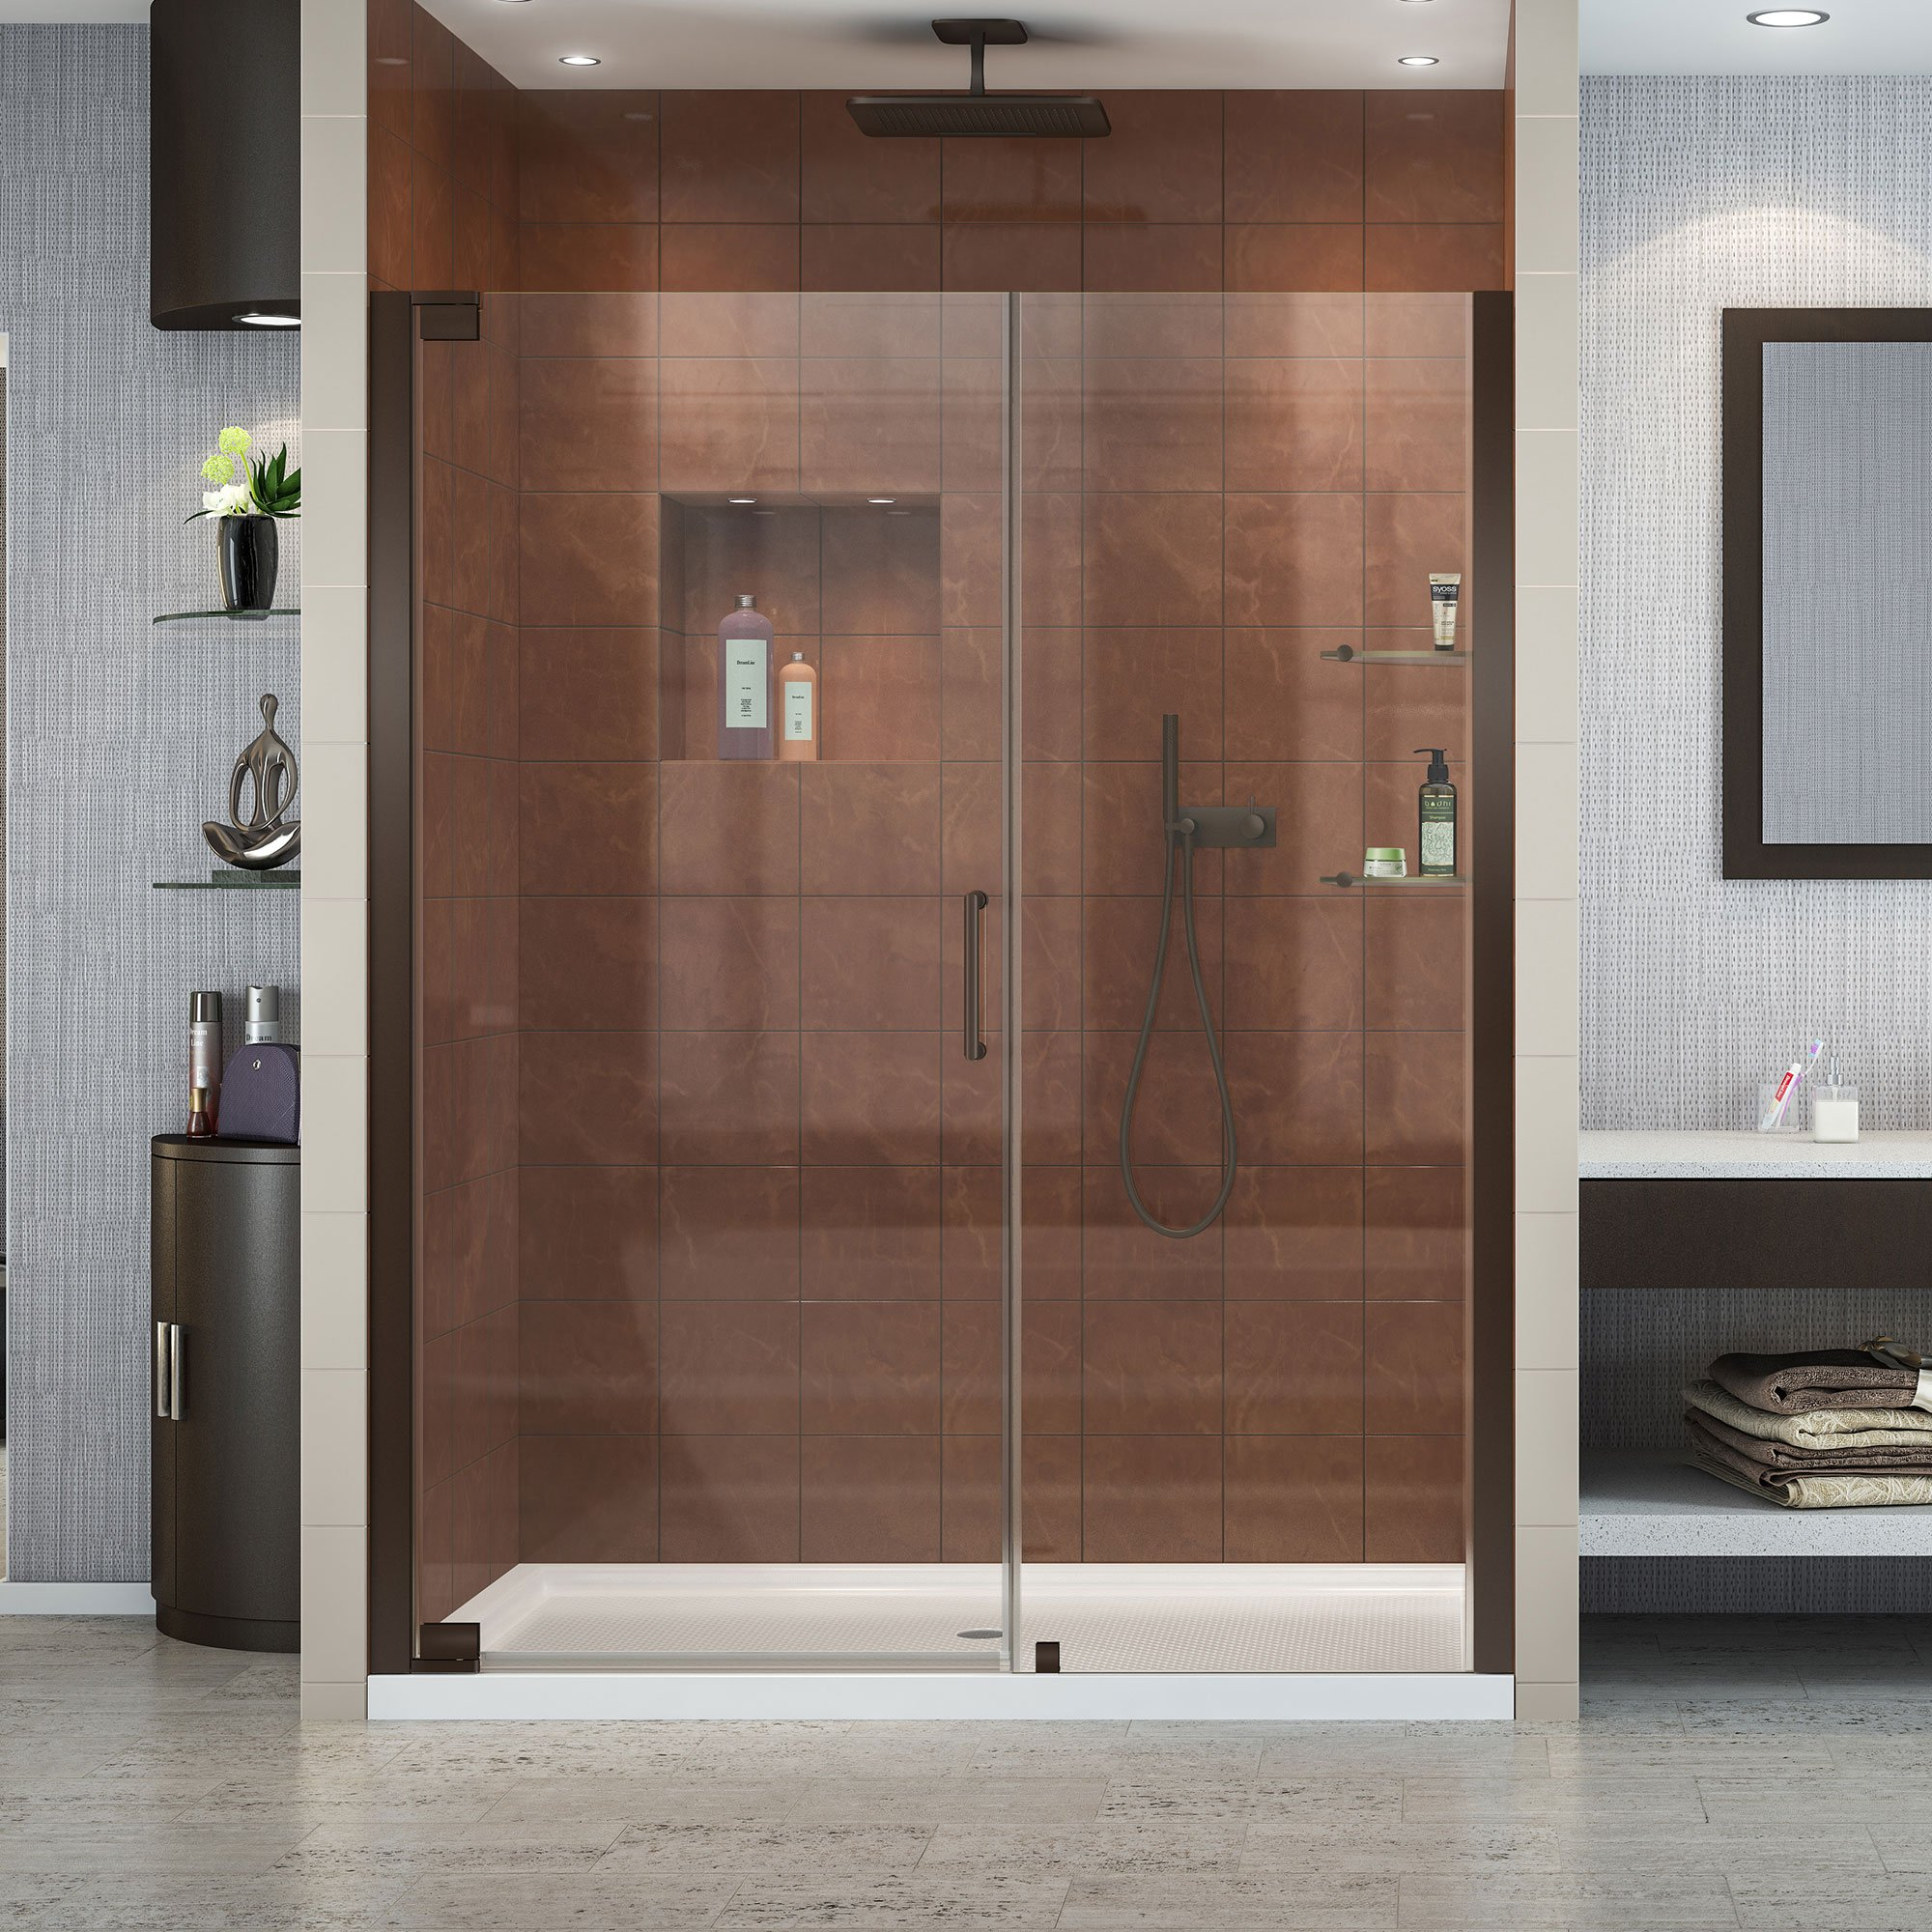 DreamLine Elegance 58-60 in. Width, Frameless Pivot Shower Door, 3/8'' Glass, Oil Rubbed Bronze Finish by DreamLine